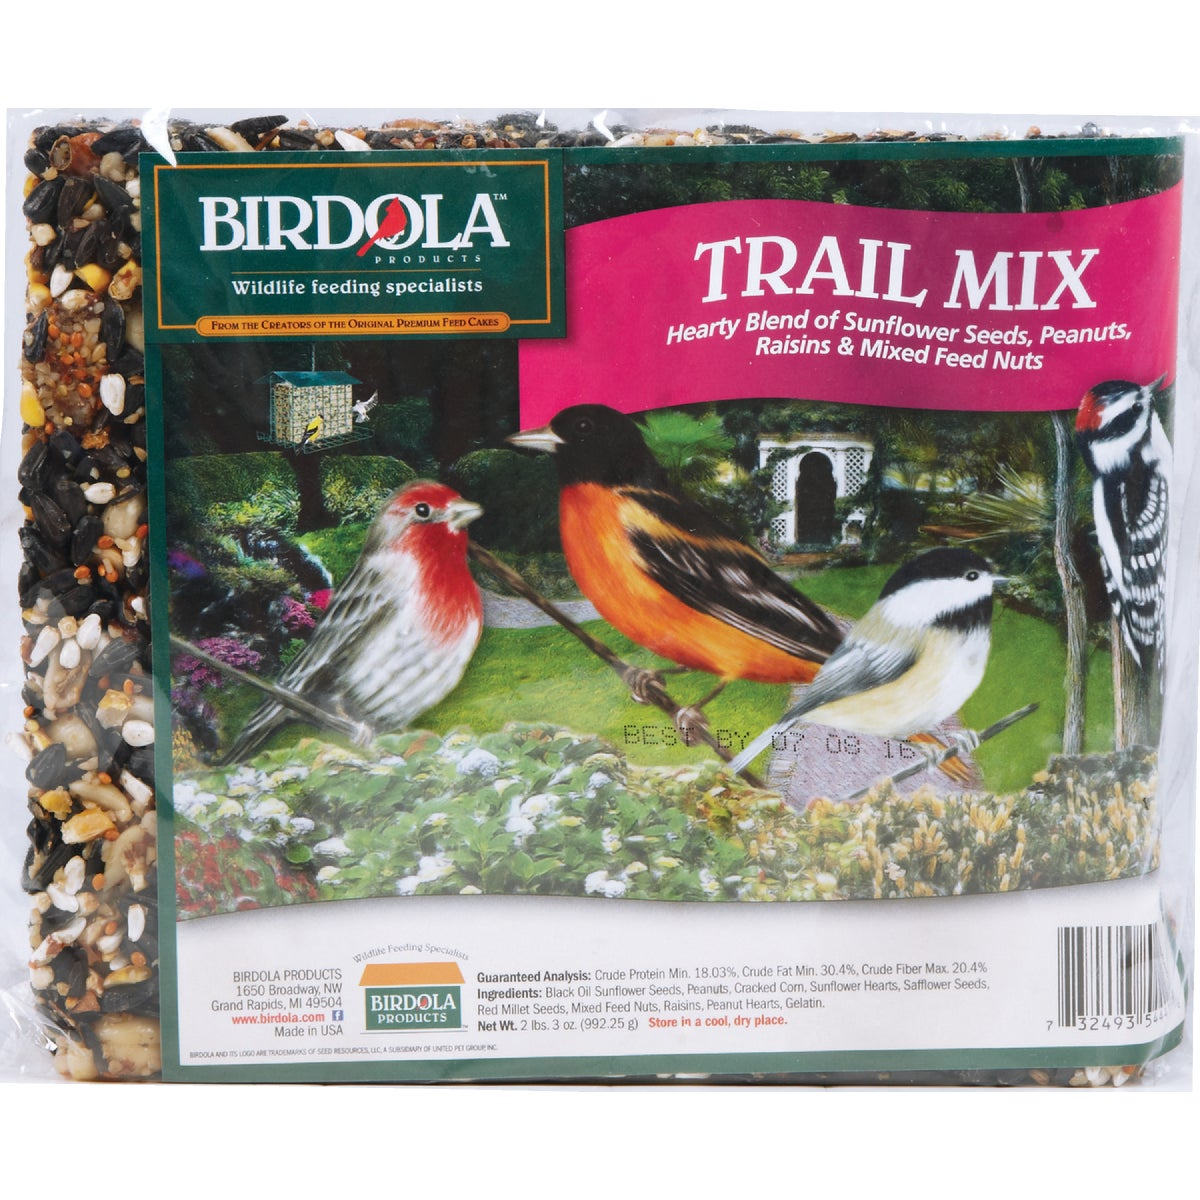 TRAIL MIX SNACK CAKE - 54441 by United Pet Group